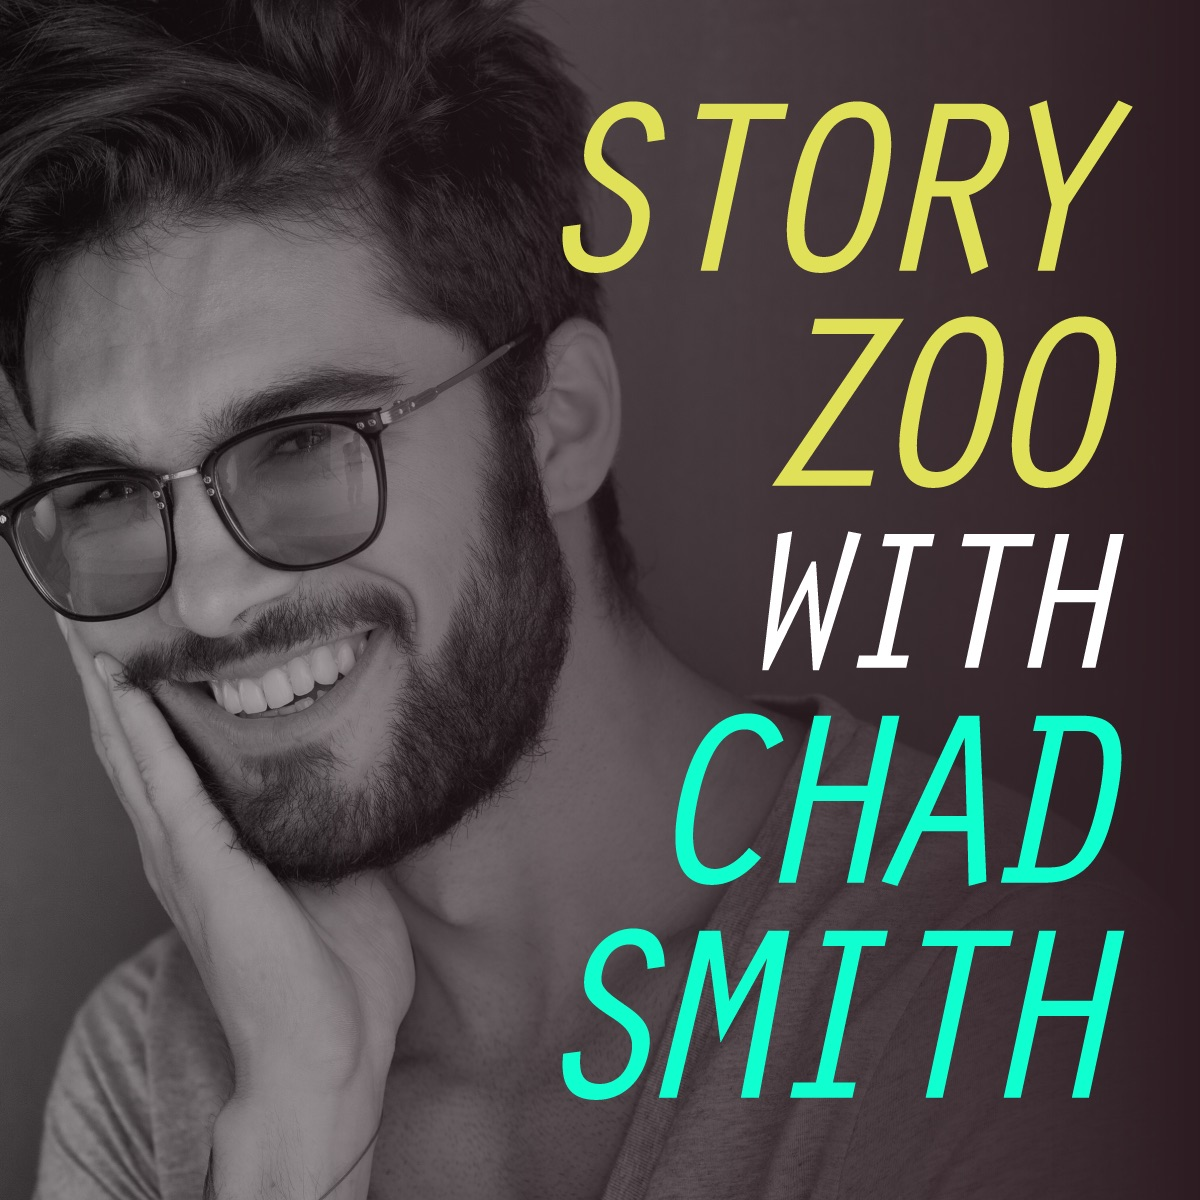 Story Zoo with Chad Smith: Podcast: Square Logo for U.S.